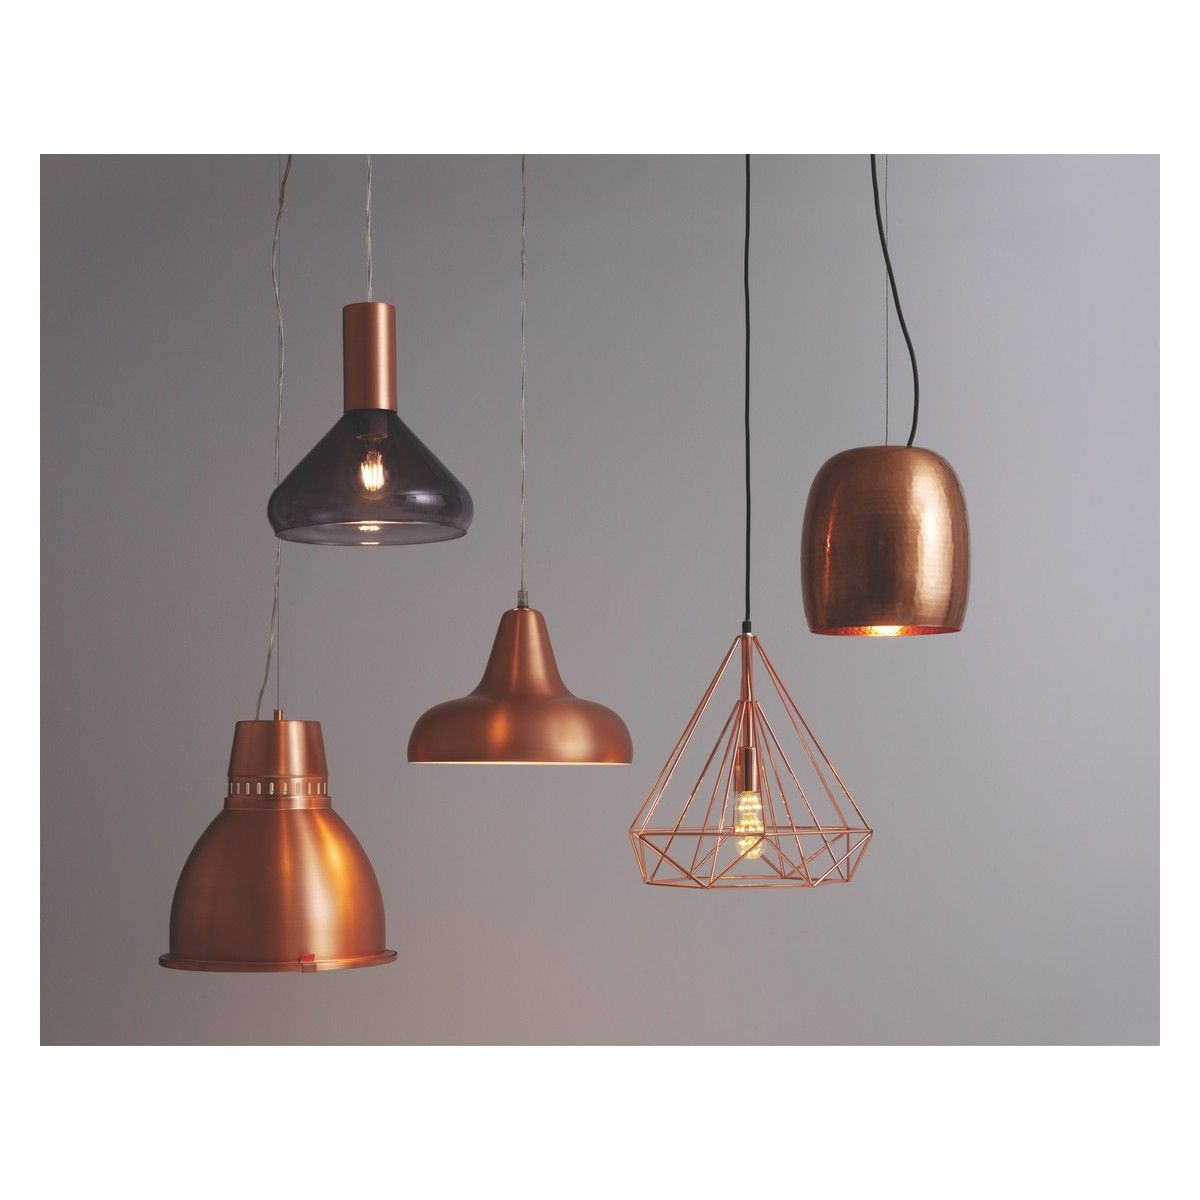 MARTEAU Copper mini metal ceiling light  sc 1 st  Pinterest & MARTEAU Copper mini metal ceiling light | Copper accessories ... azcodes.com